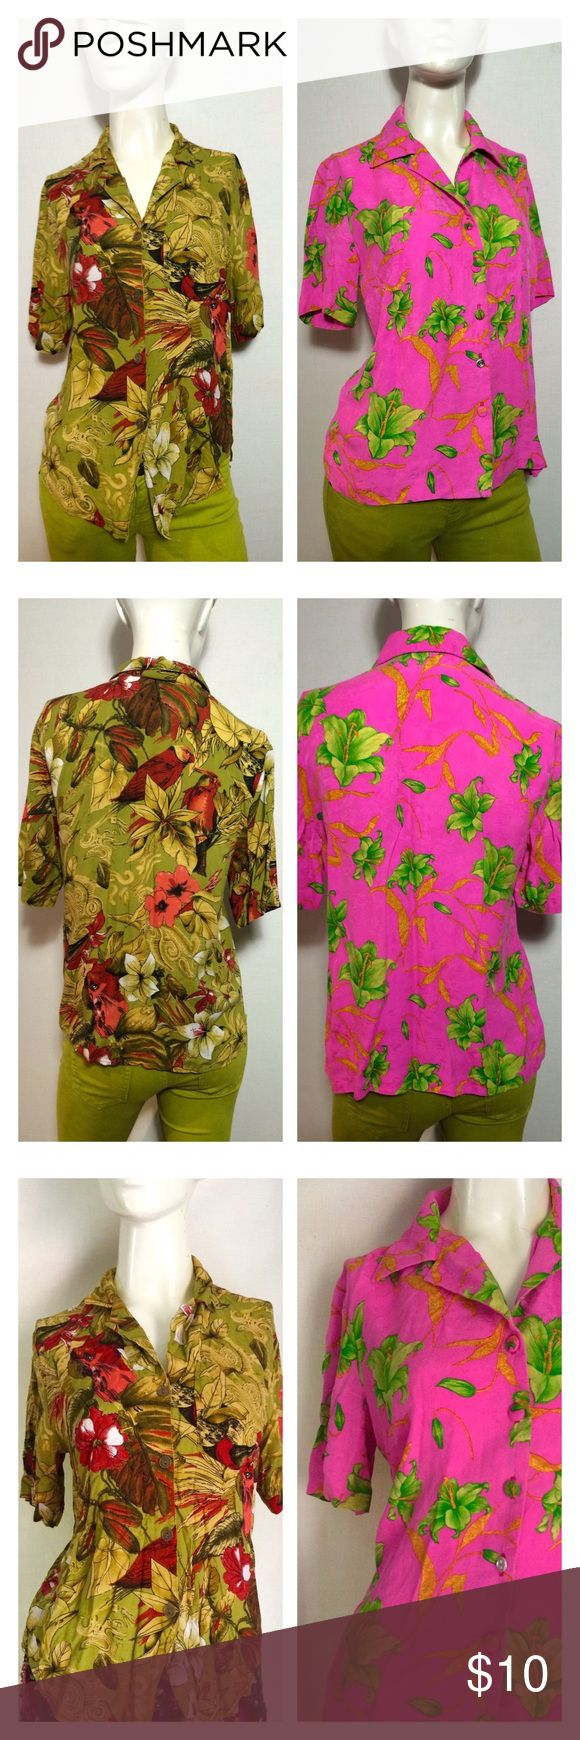 🌺Nerdy Hawaiian Shirt Set Hipster Mom Unisex Tops 2 totally vintage nerdy hipster button down blouses - the hot pink one is a truly awesome silk number but one of the buttons last from bottom is missing the cover. still cute but I'll sell em cheap to reflect the flaw - both medium or men xsmall Vintage Tops Button Down Shirts